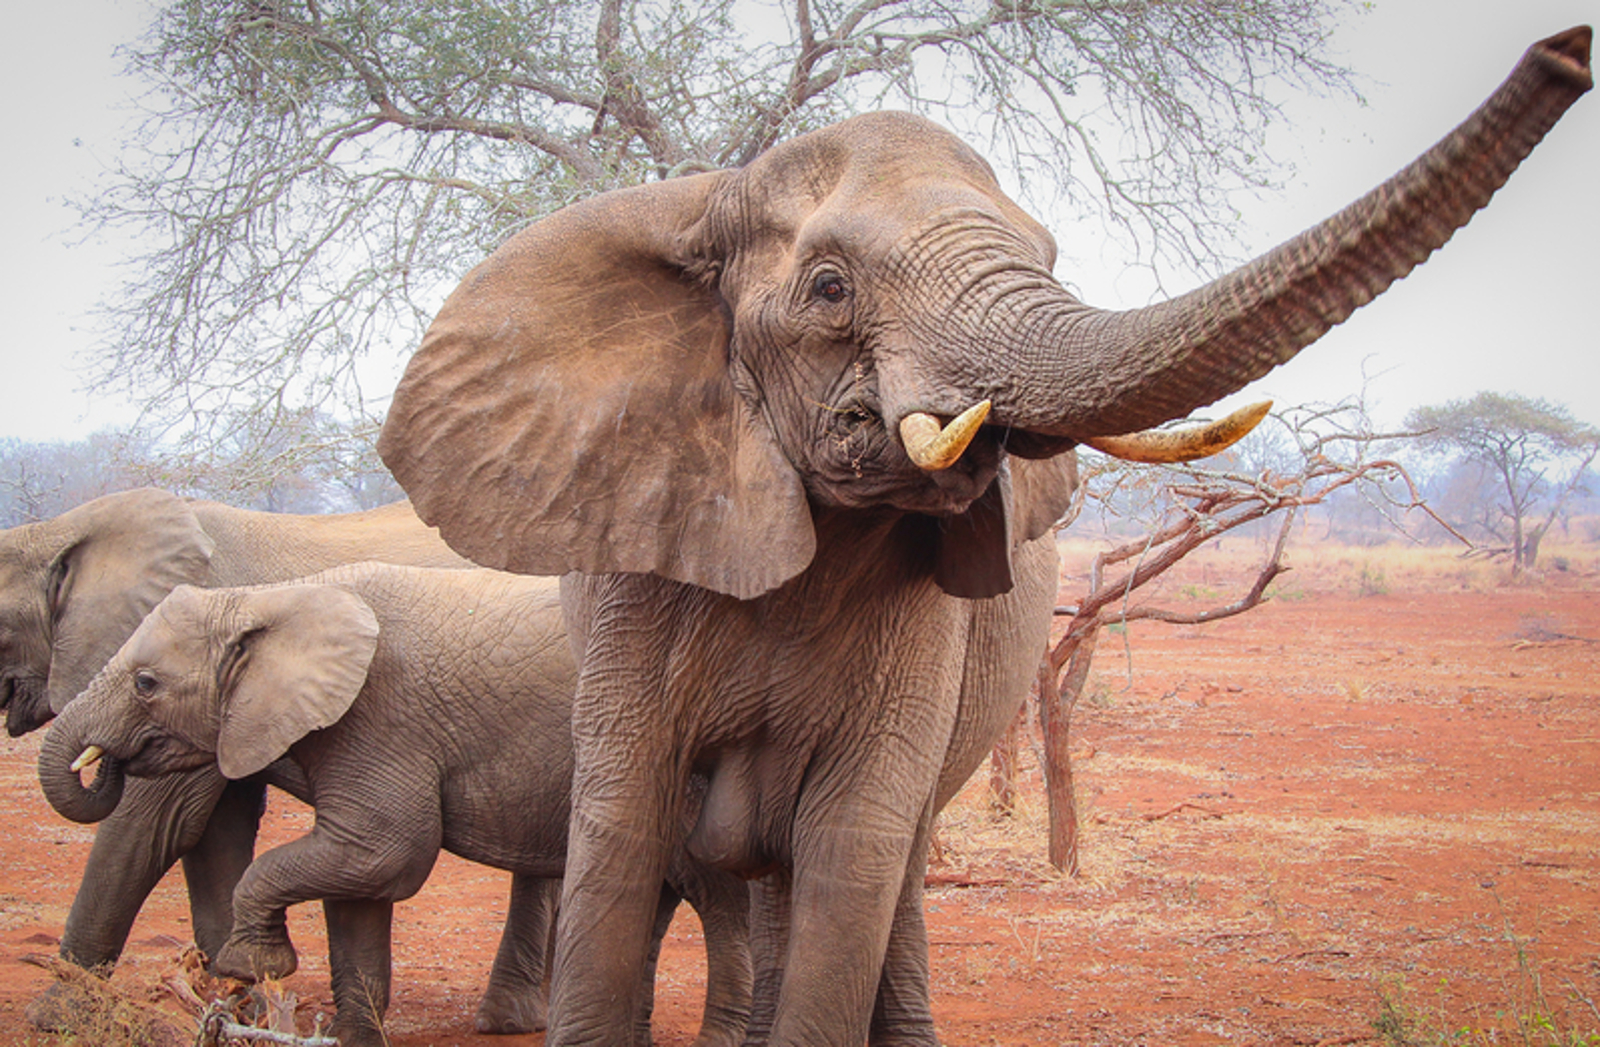 Elephants waive their trunks to smell better.